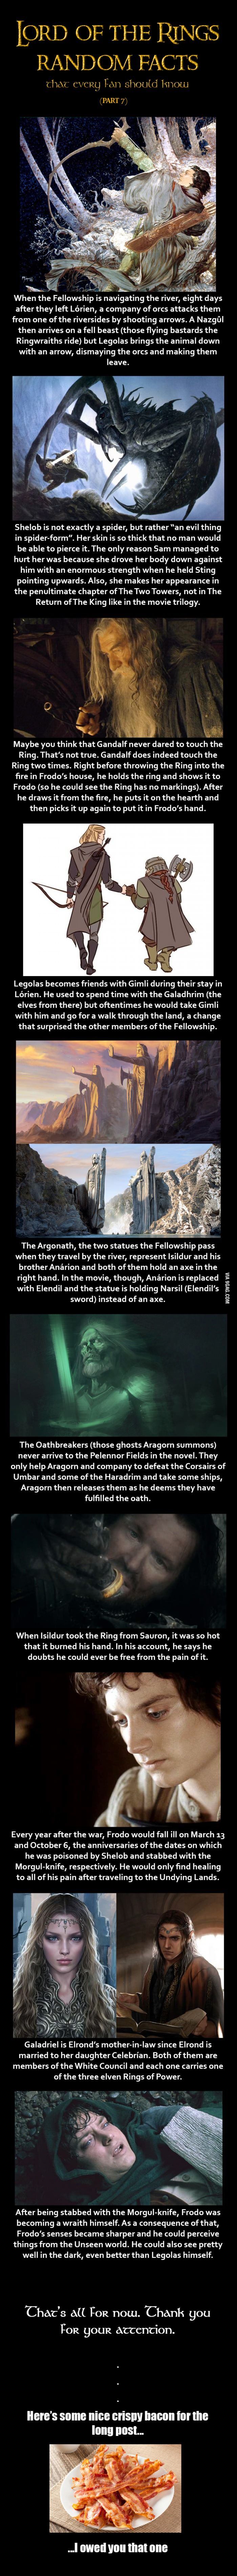 LORD OF THE RINGS Facts that Every Fan Should Know8